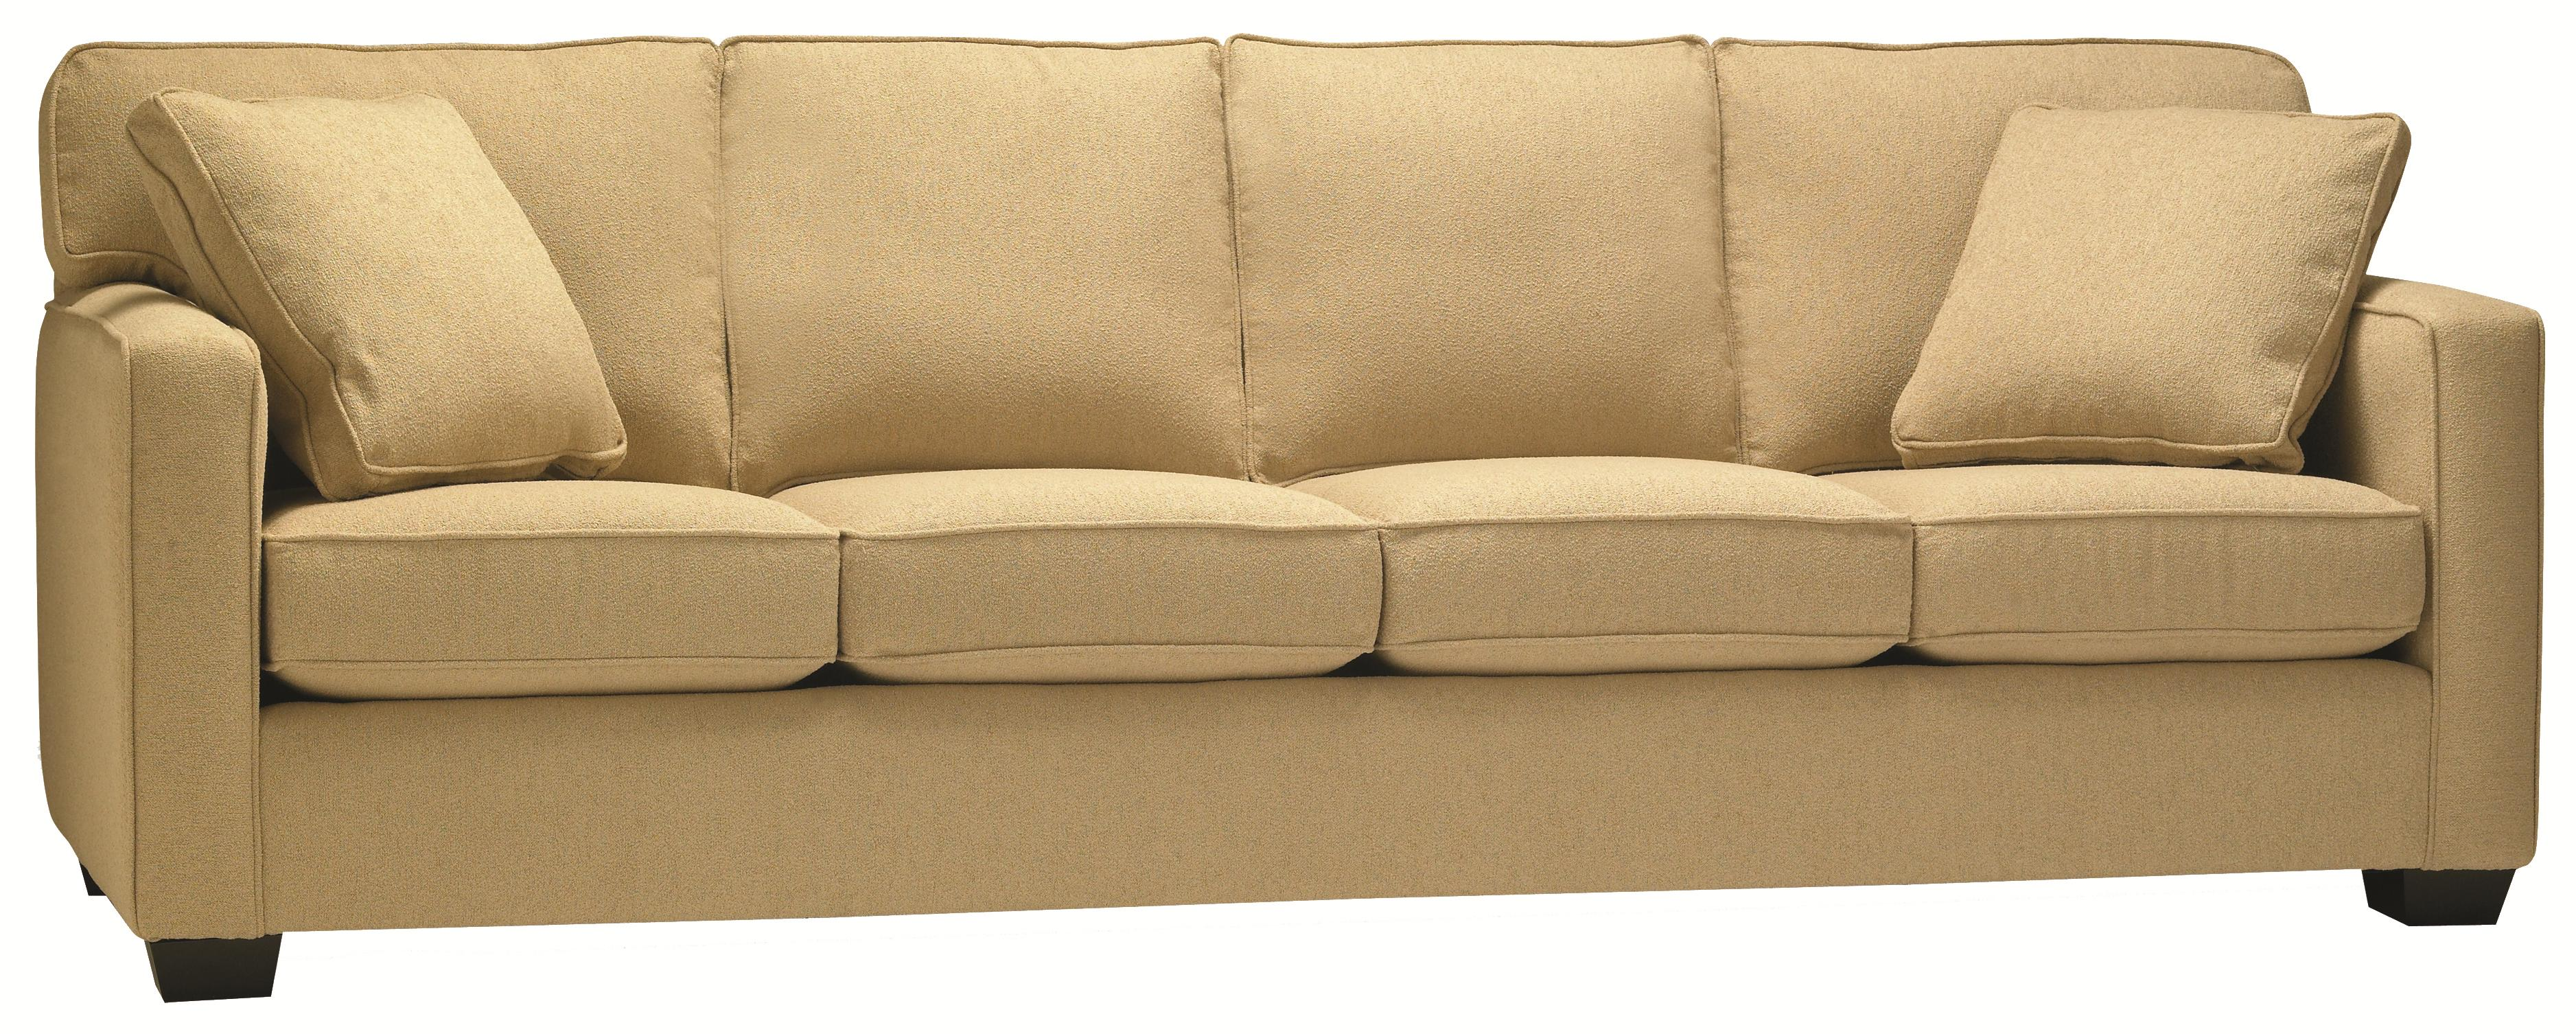 lewis home 5901 four seat sofa in